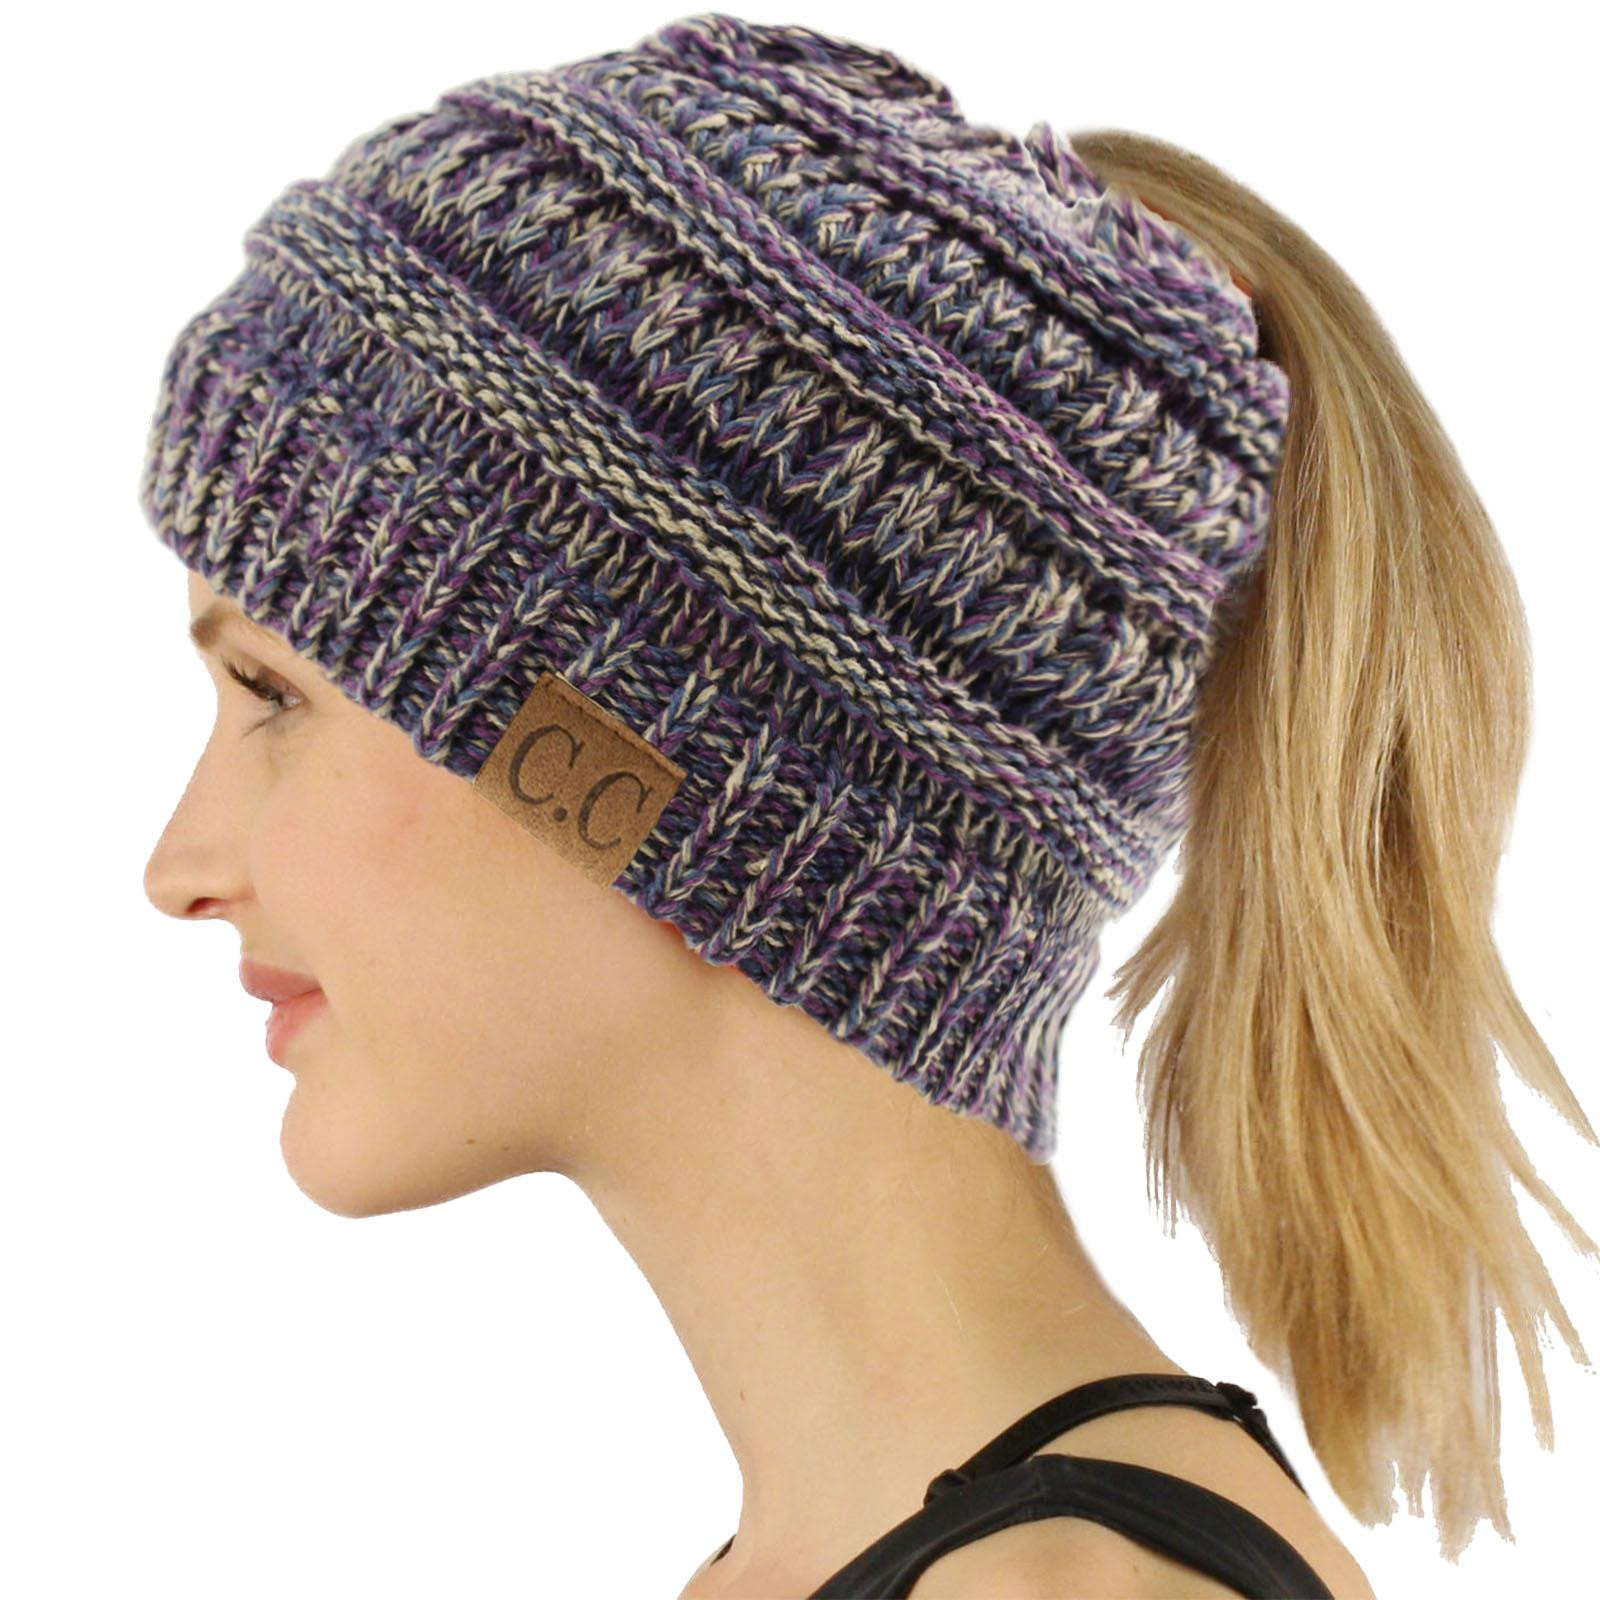 Messy Bun Beanie Hat Elegant Cc Beanietail Messy High Bun Ponytail Stretchy Knit Beanie Of Brilliant 47 Photos Messy Bun Beanie Hat